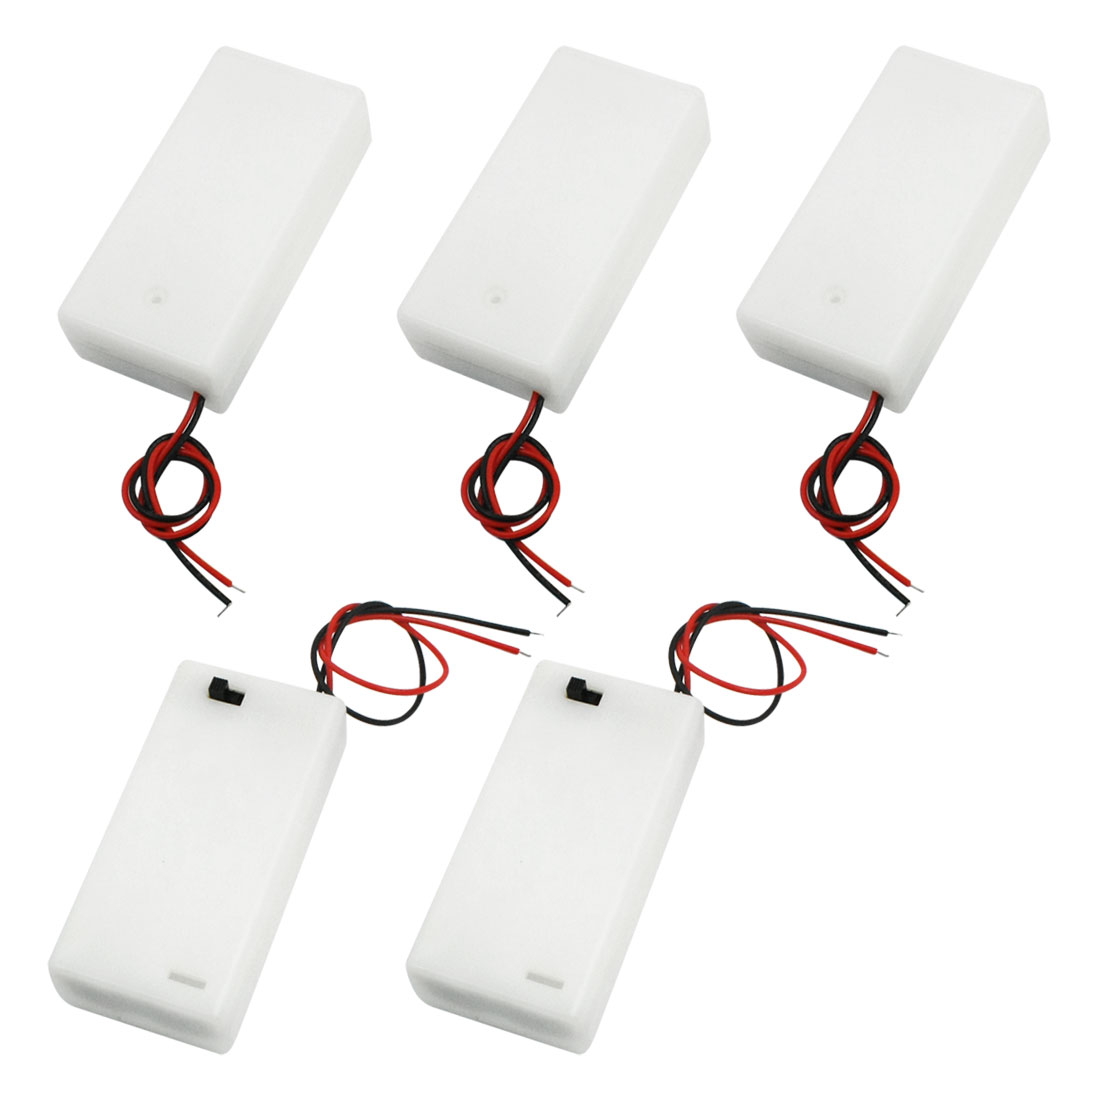 5 PCS Double Wired Leads Slide Cover Rectangle White Plastic 2 x 1.5V AA Battery Holder Case Box w ON/OFF Switch